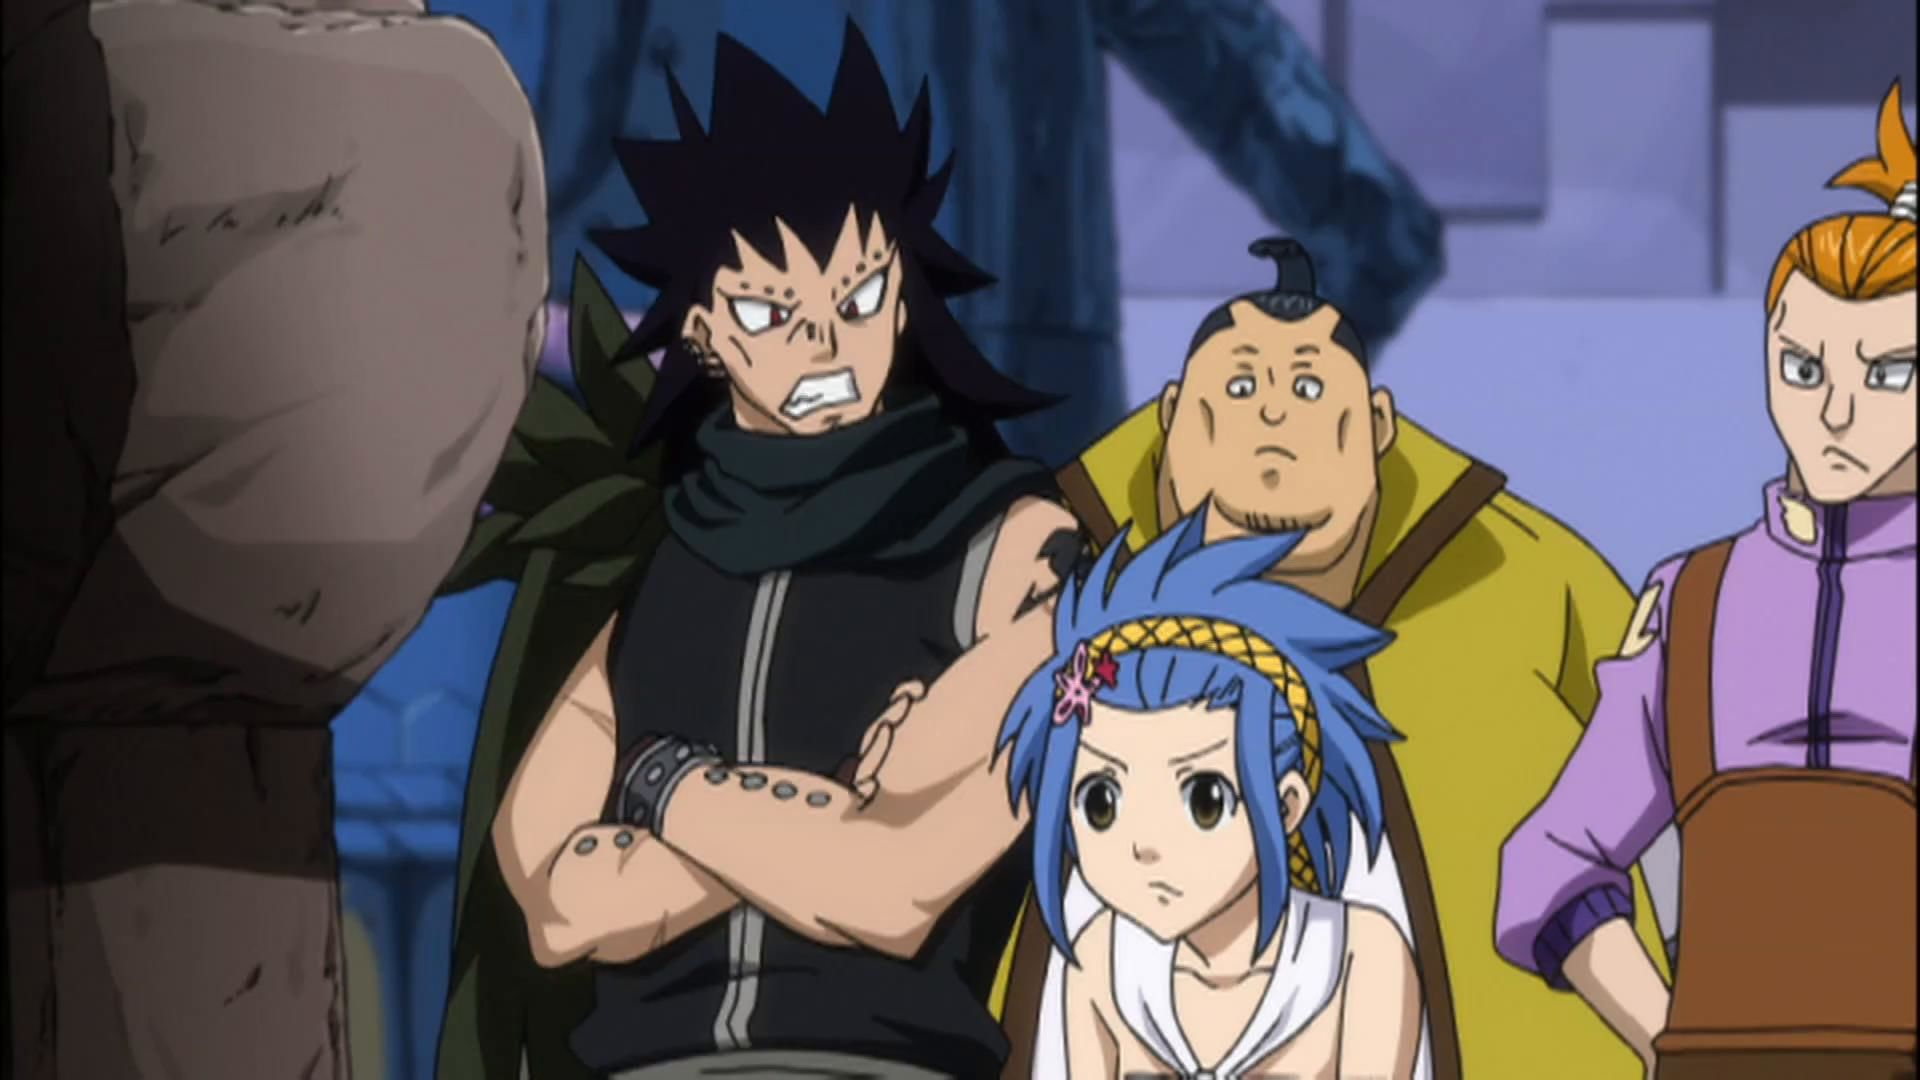 Watch Fairy Tail Episode 137 English Subbed Online